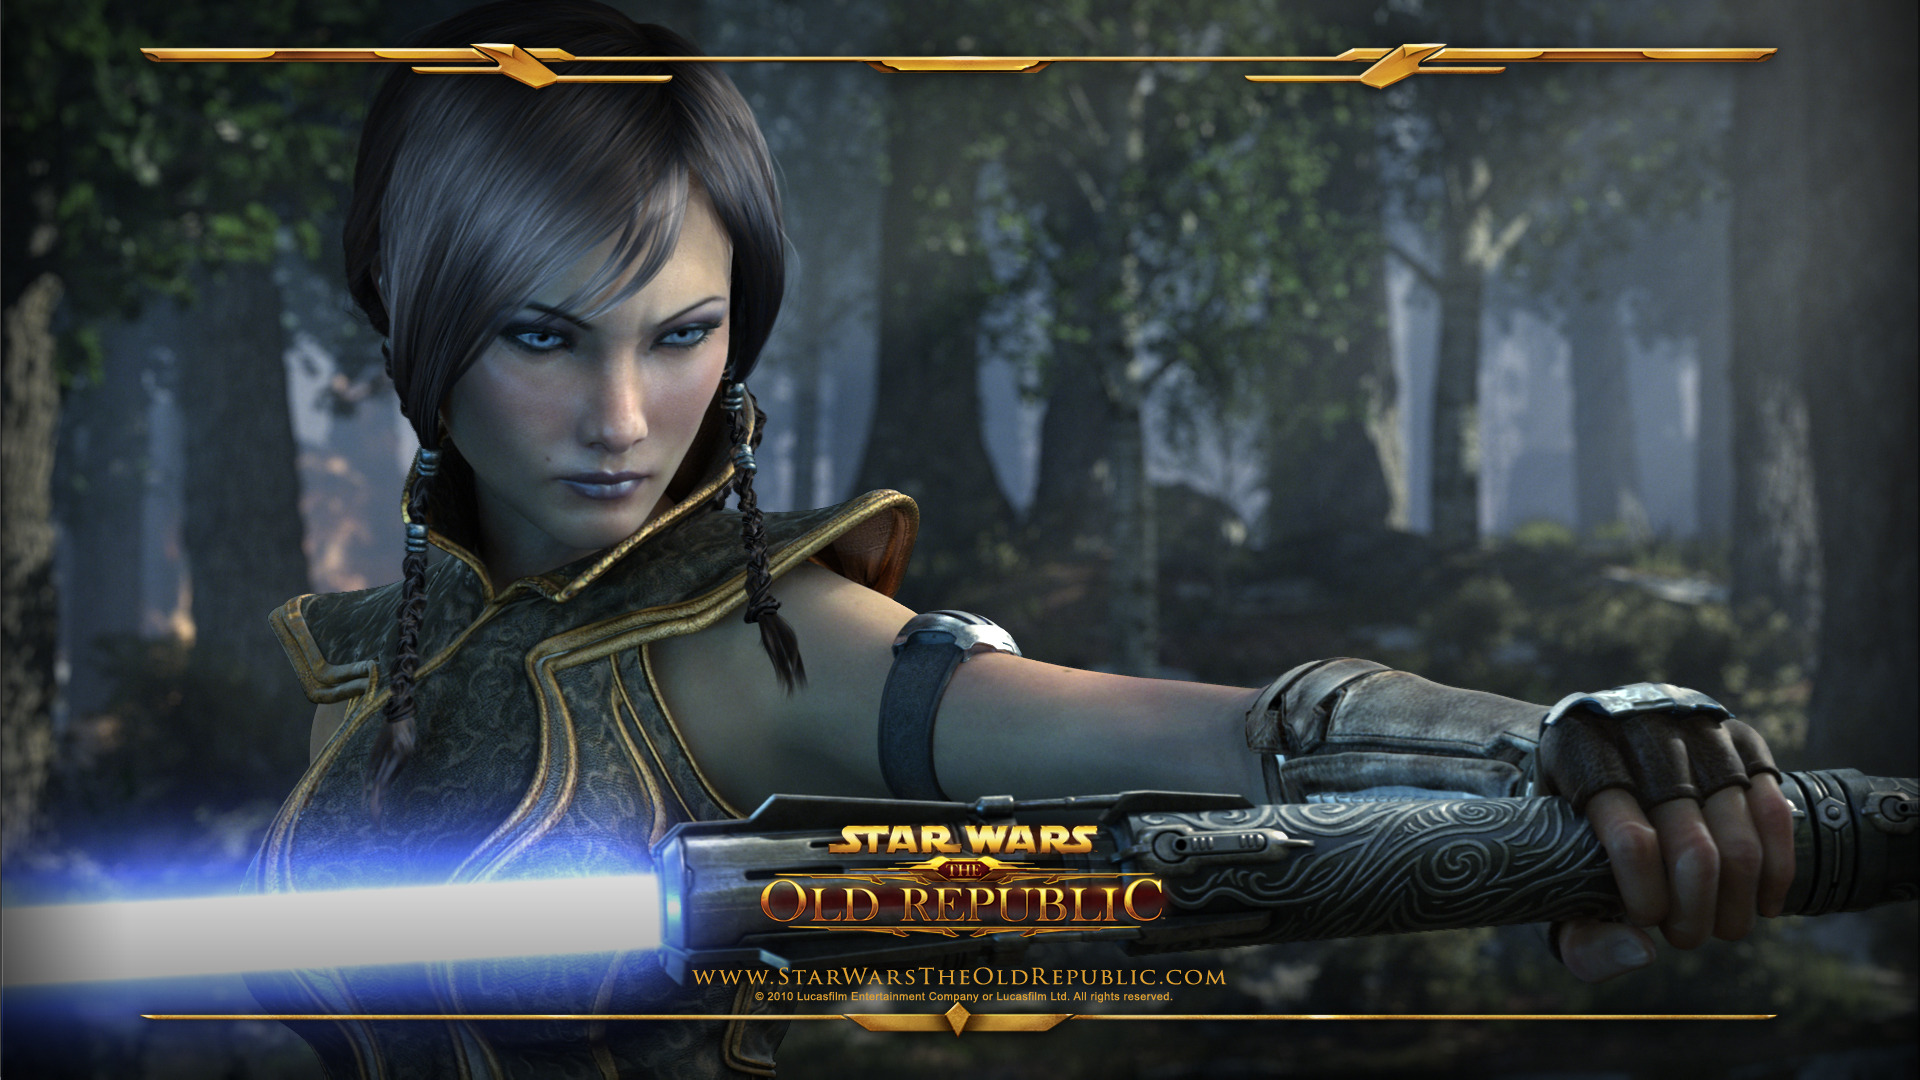 fond d'écran hd: fond d écran star wars the old republic